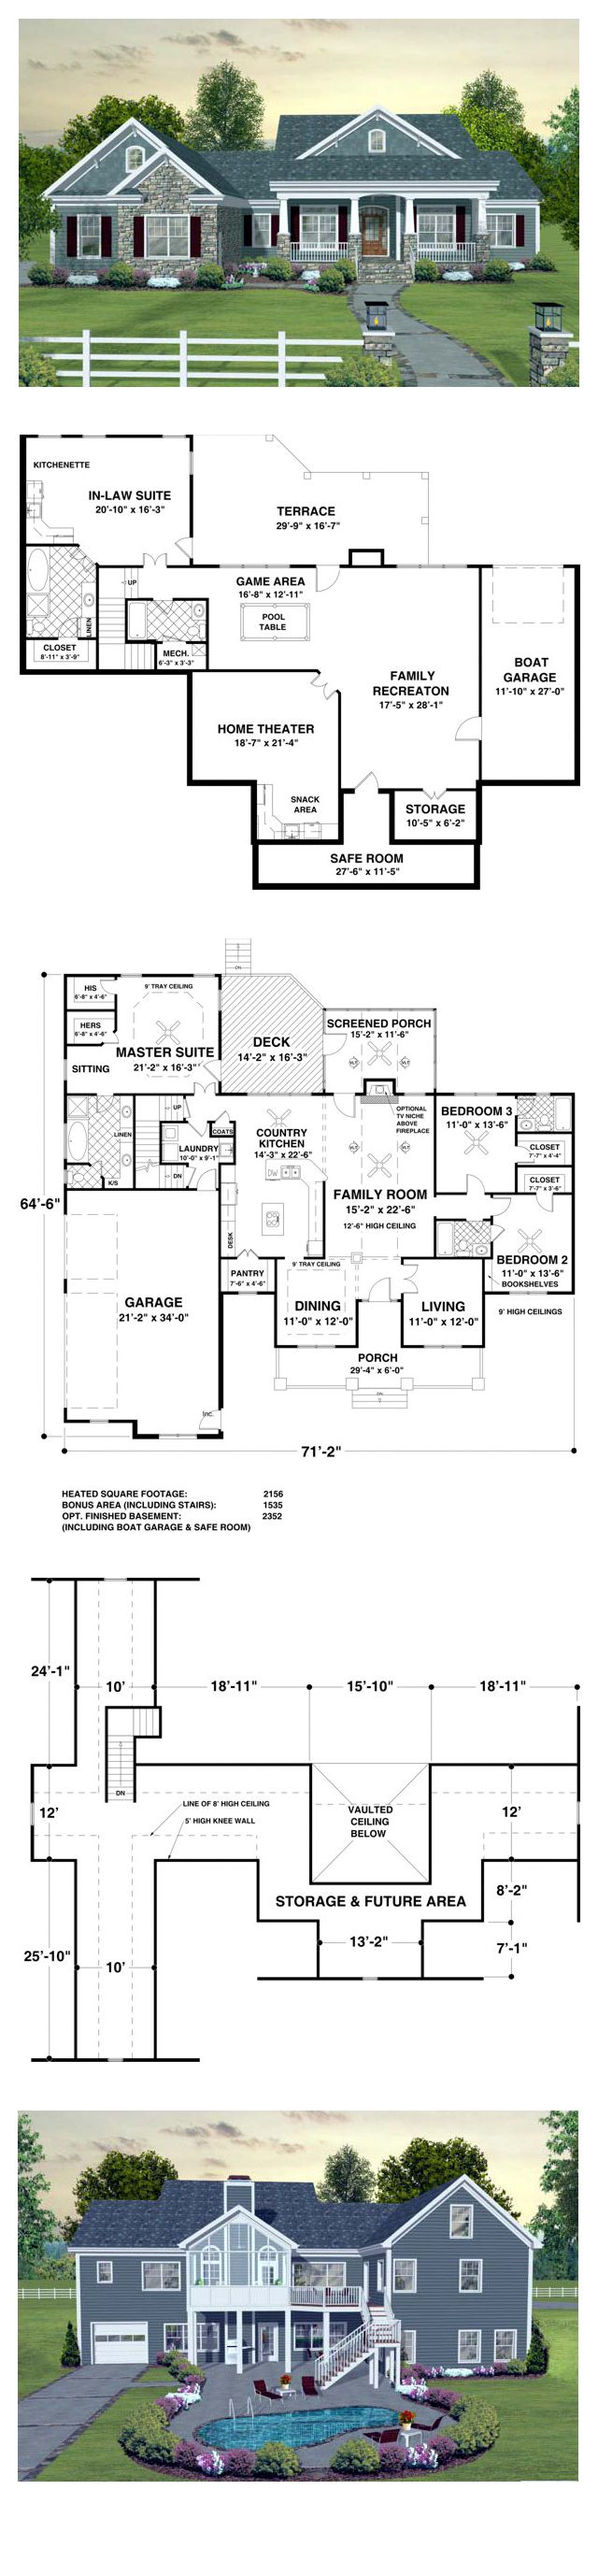 Craftsman House Plan 93483 | Total Living Area: 2156 sq. ft., 3 bedrooms & 3 bathrooms. A three car garage, screened porch, spacious country kitchen, an optional 1,535 sq. ft. bonus area and an optional 2,352 sq. ft. basement make this home irresistible! #houseplan #craftsmanstyle